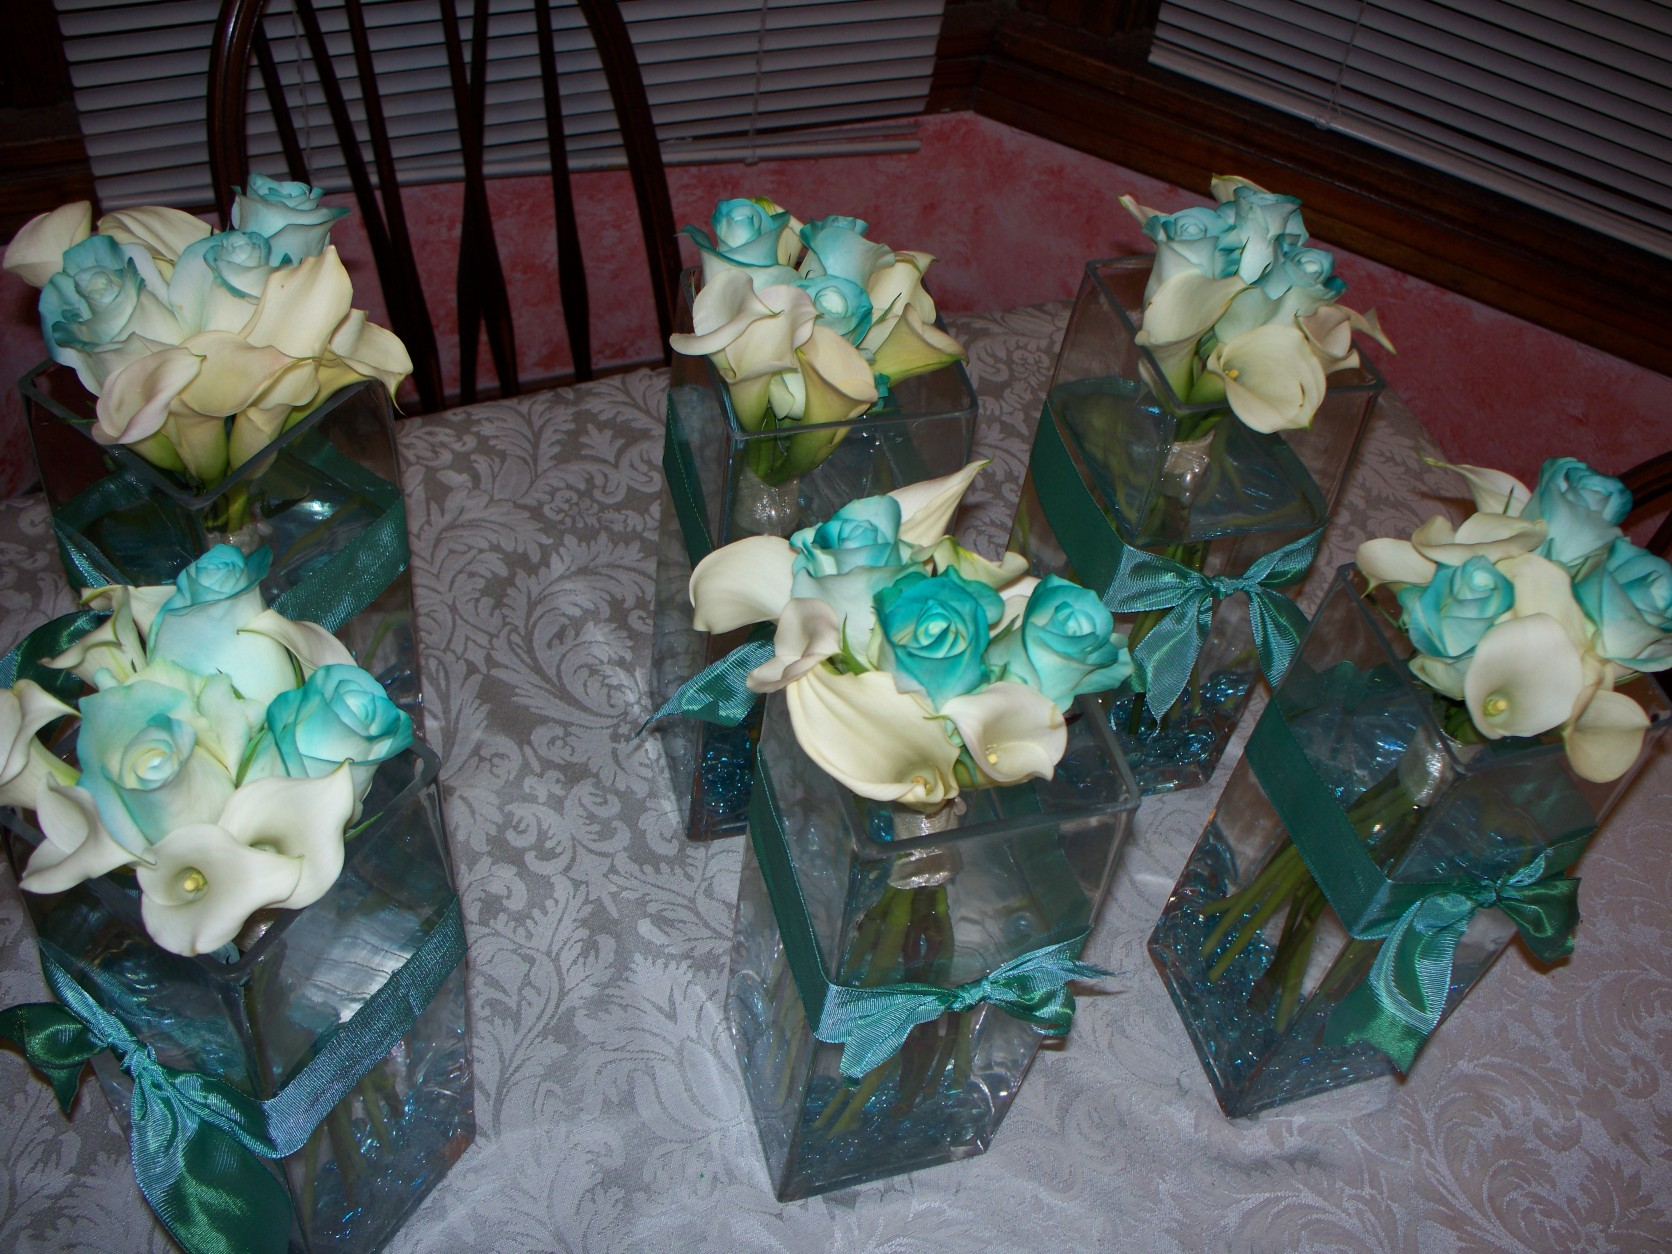 922 WHITE CALA ,ROSES TIPPED W/ AQUA COLOR